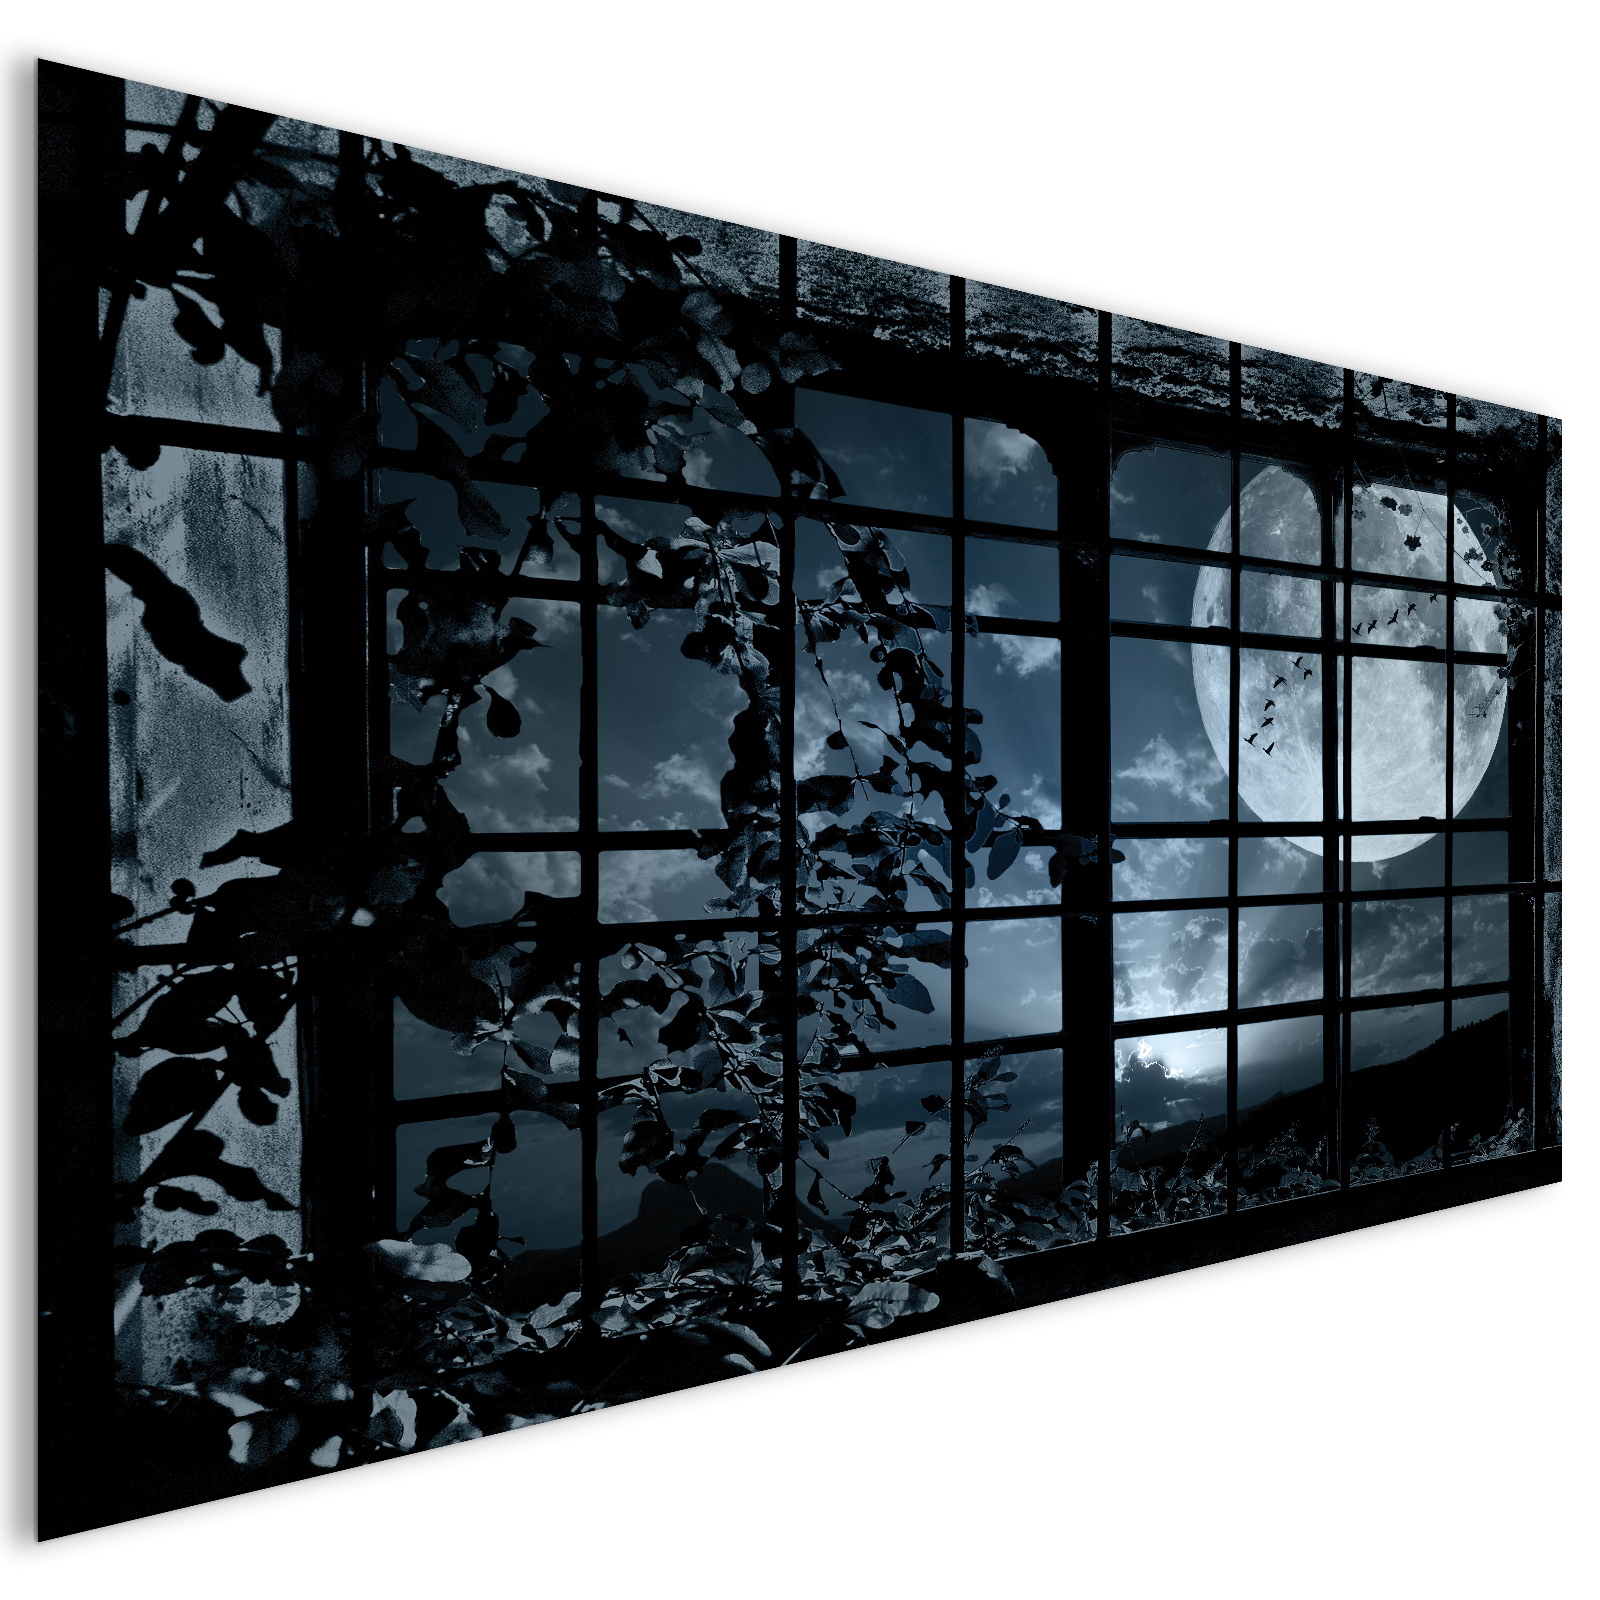 extra large black spooky moon window modern fantasy acrylic glass wall art laguna project. Black Bedroom Furniture Sets. Home Design Ideas